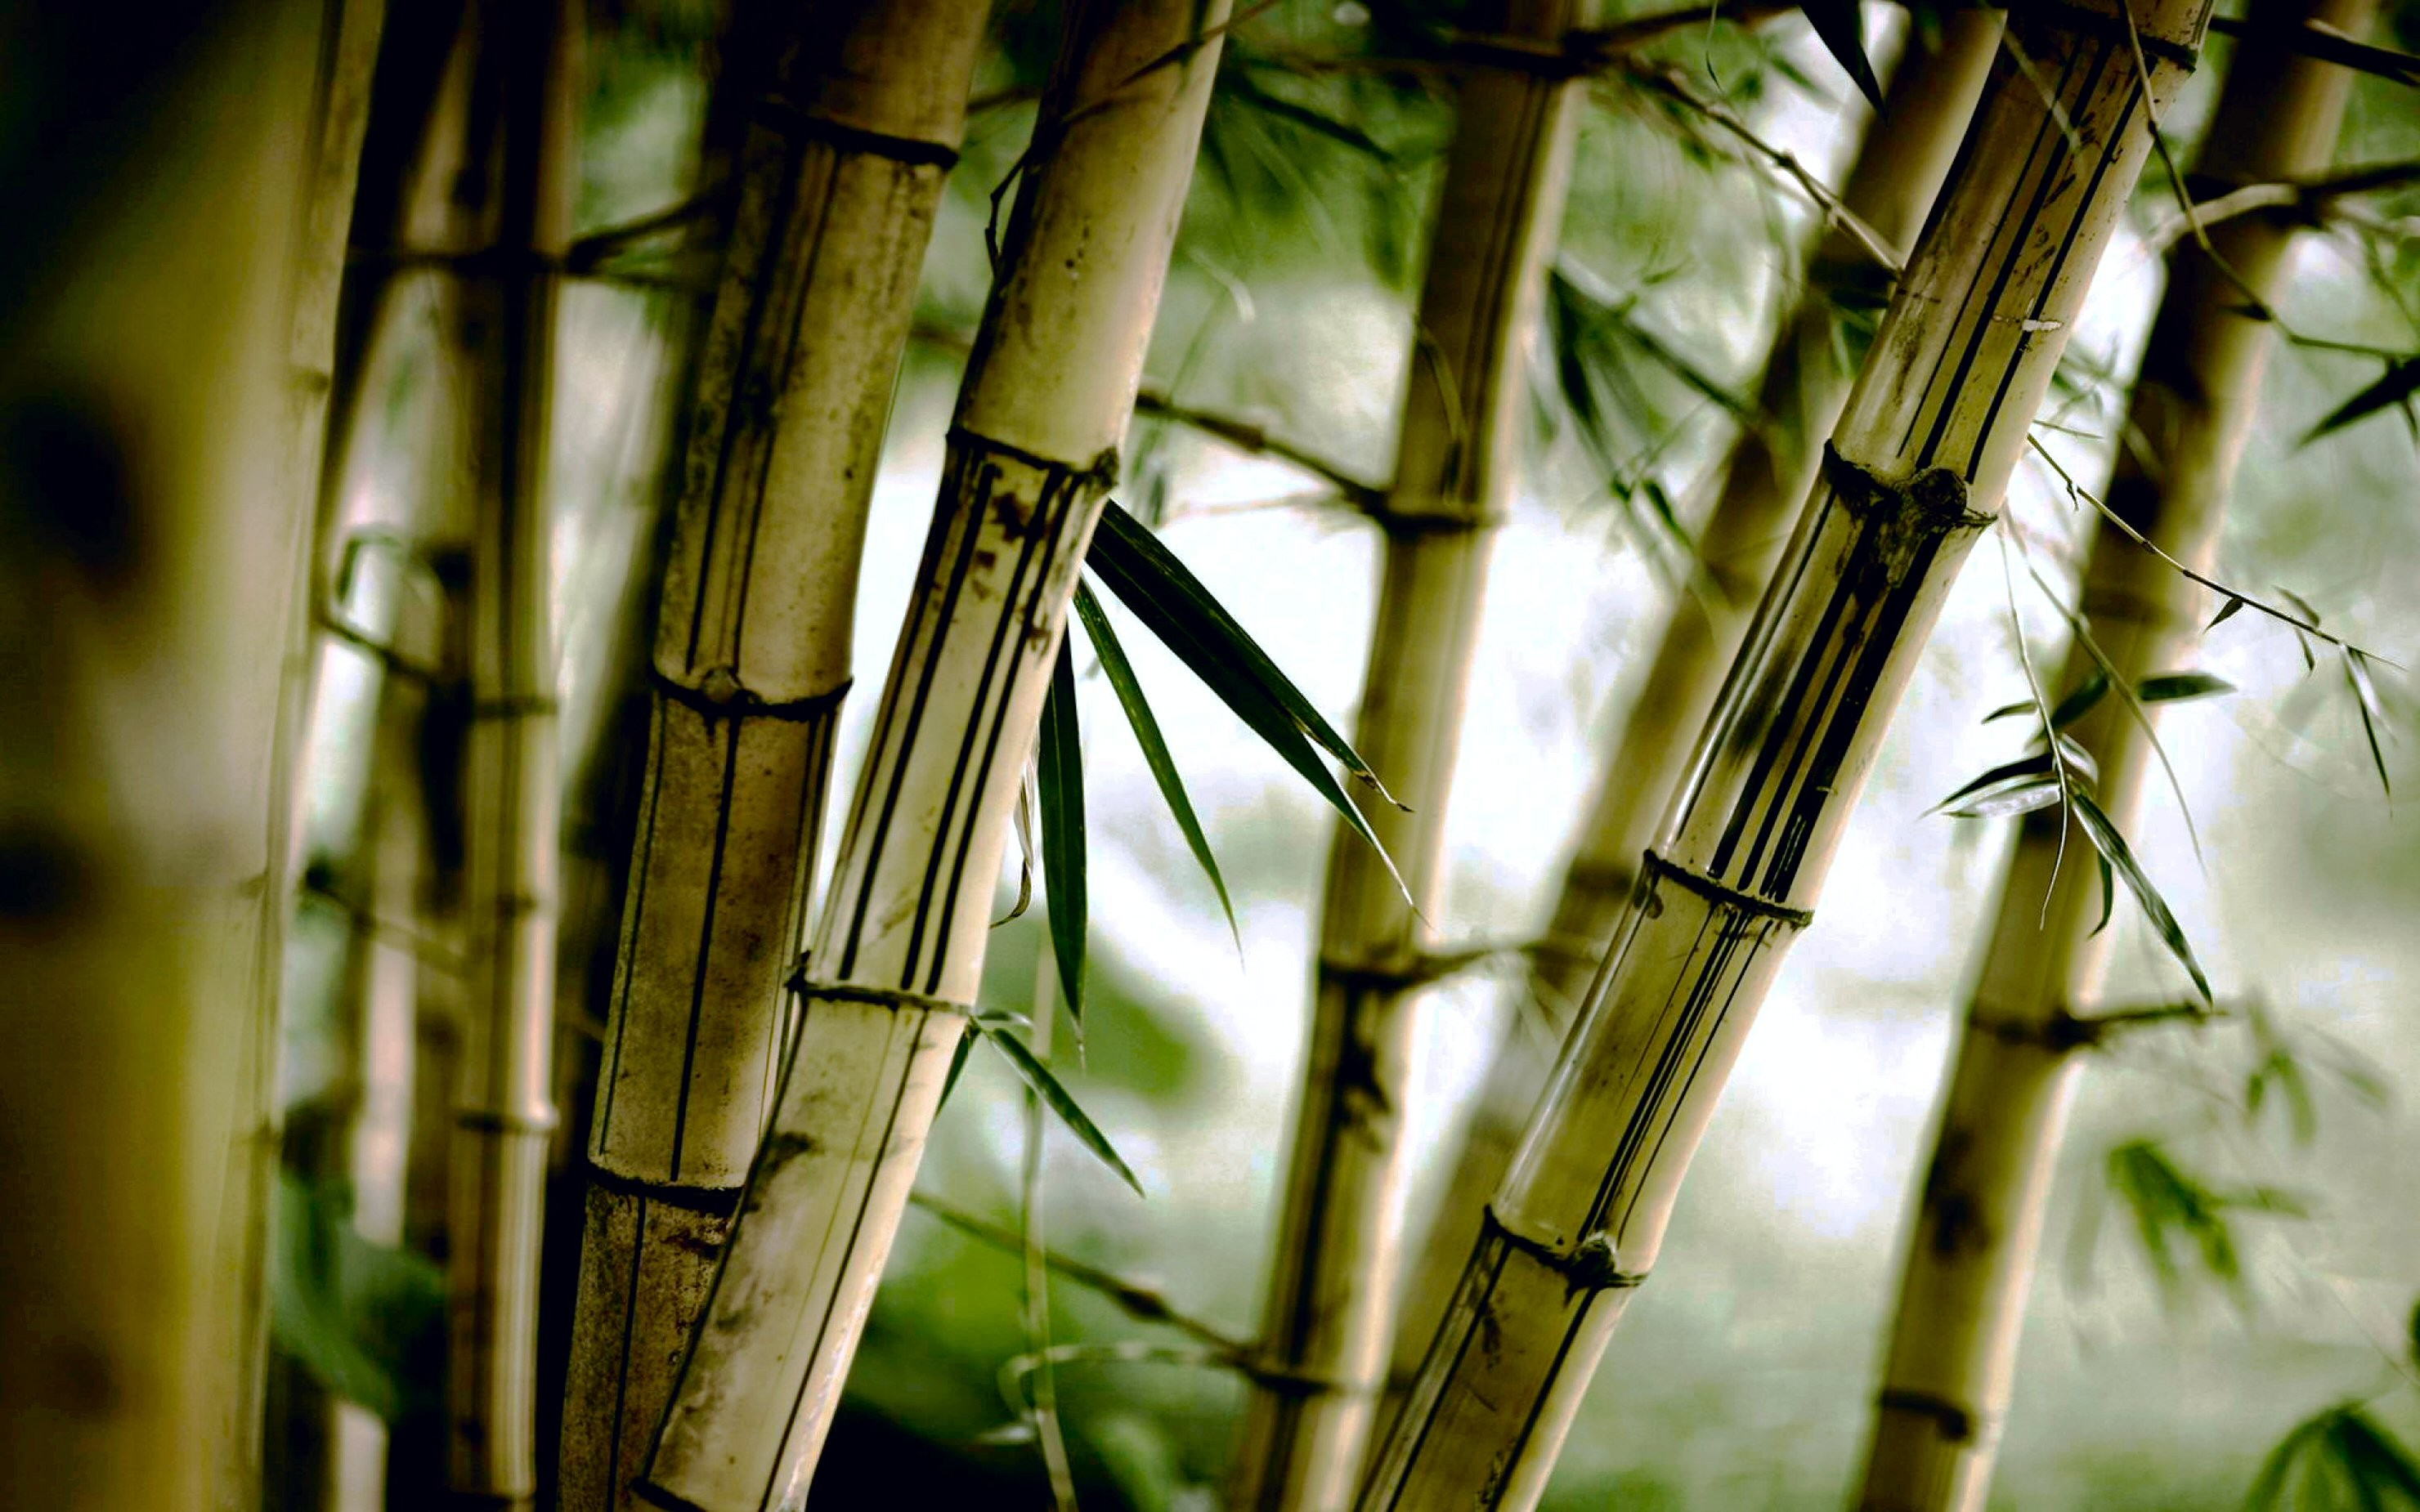 2960x1850 HD Wallpaper | Background ID:403219.  Earth Bamboo